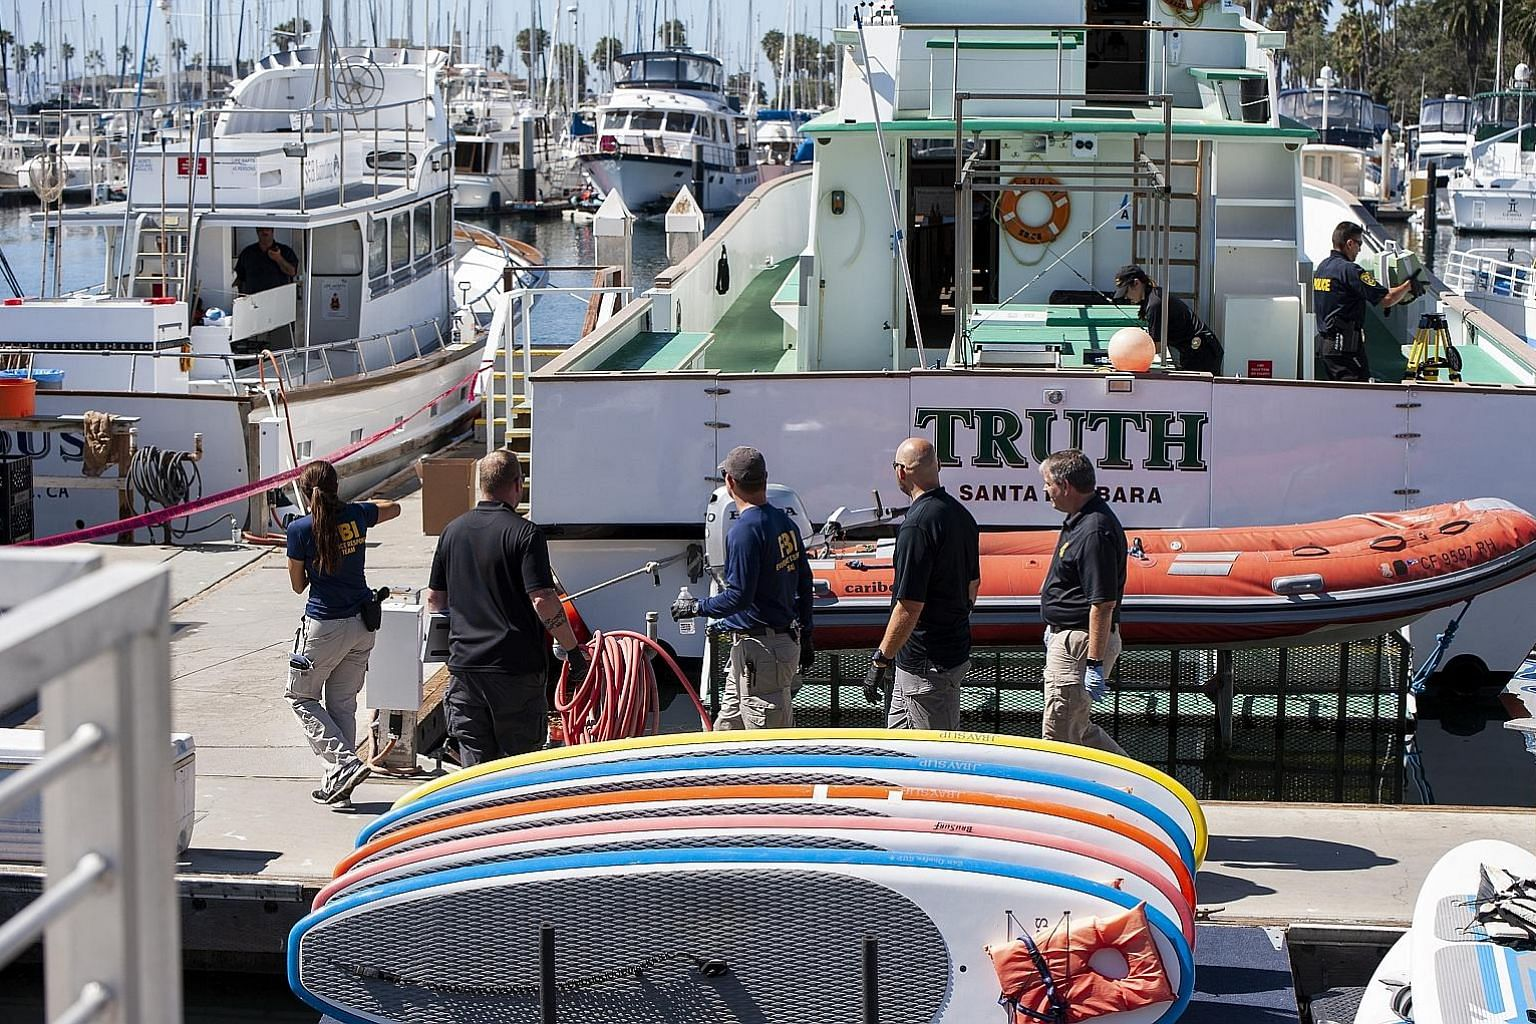 The authorities at the Truth, a diving boat owned by Truth Aquatics, the firm involved in last week's boat fire tragedy, at the Santa Barbara Harbour in California on Sunday. The Santa Barbara County Sheriff said the search warrants that have been se